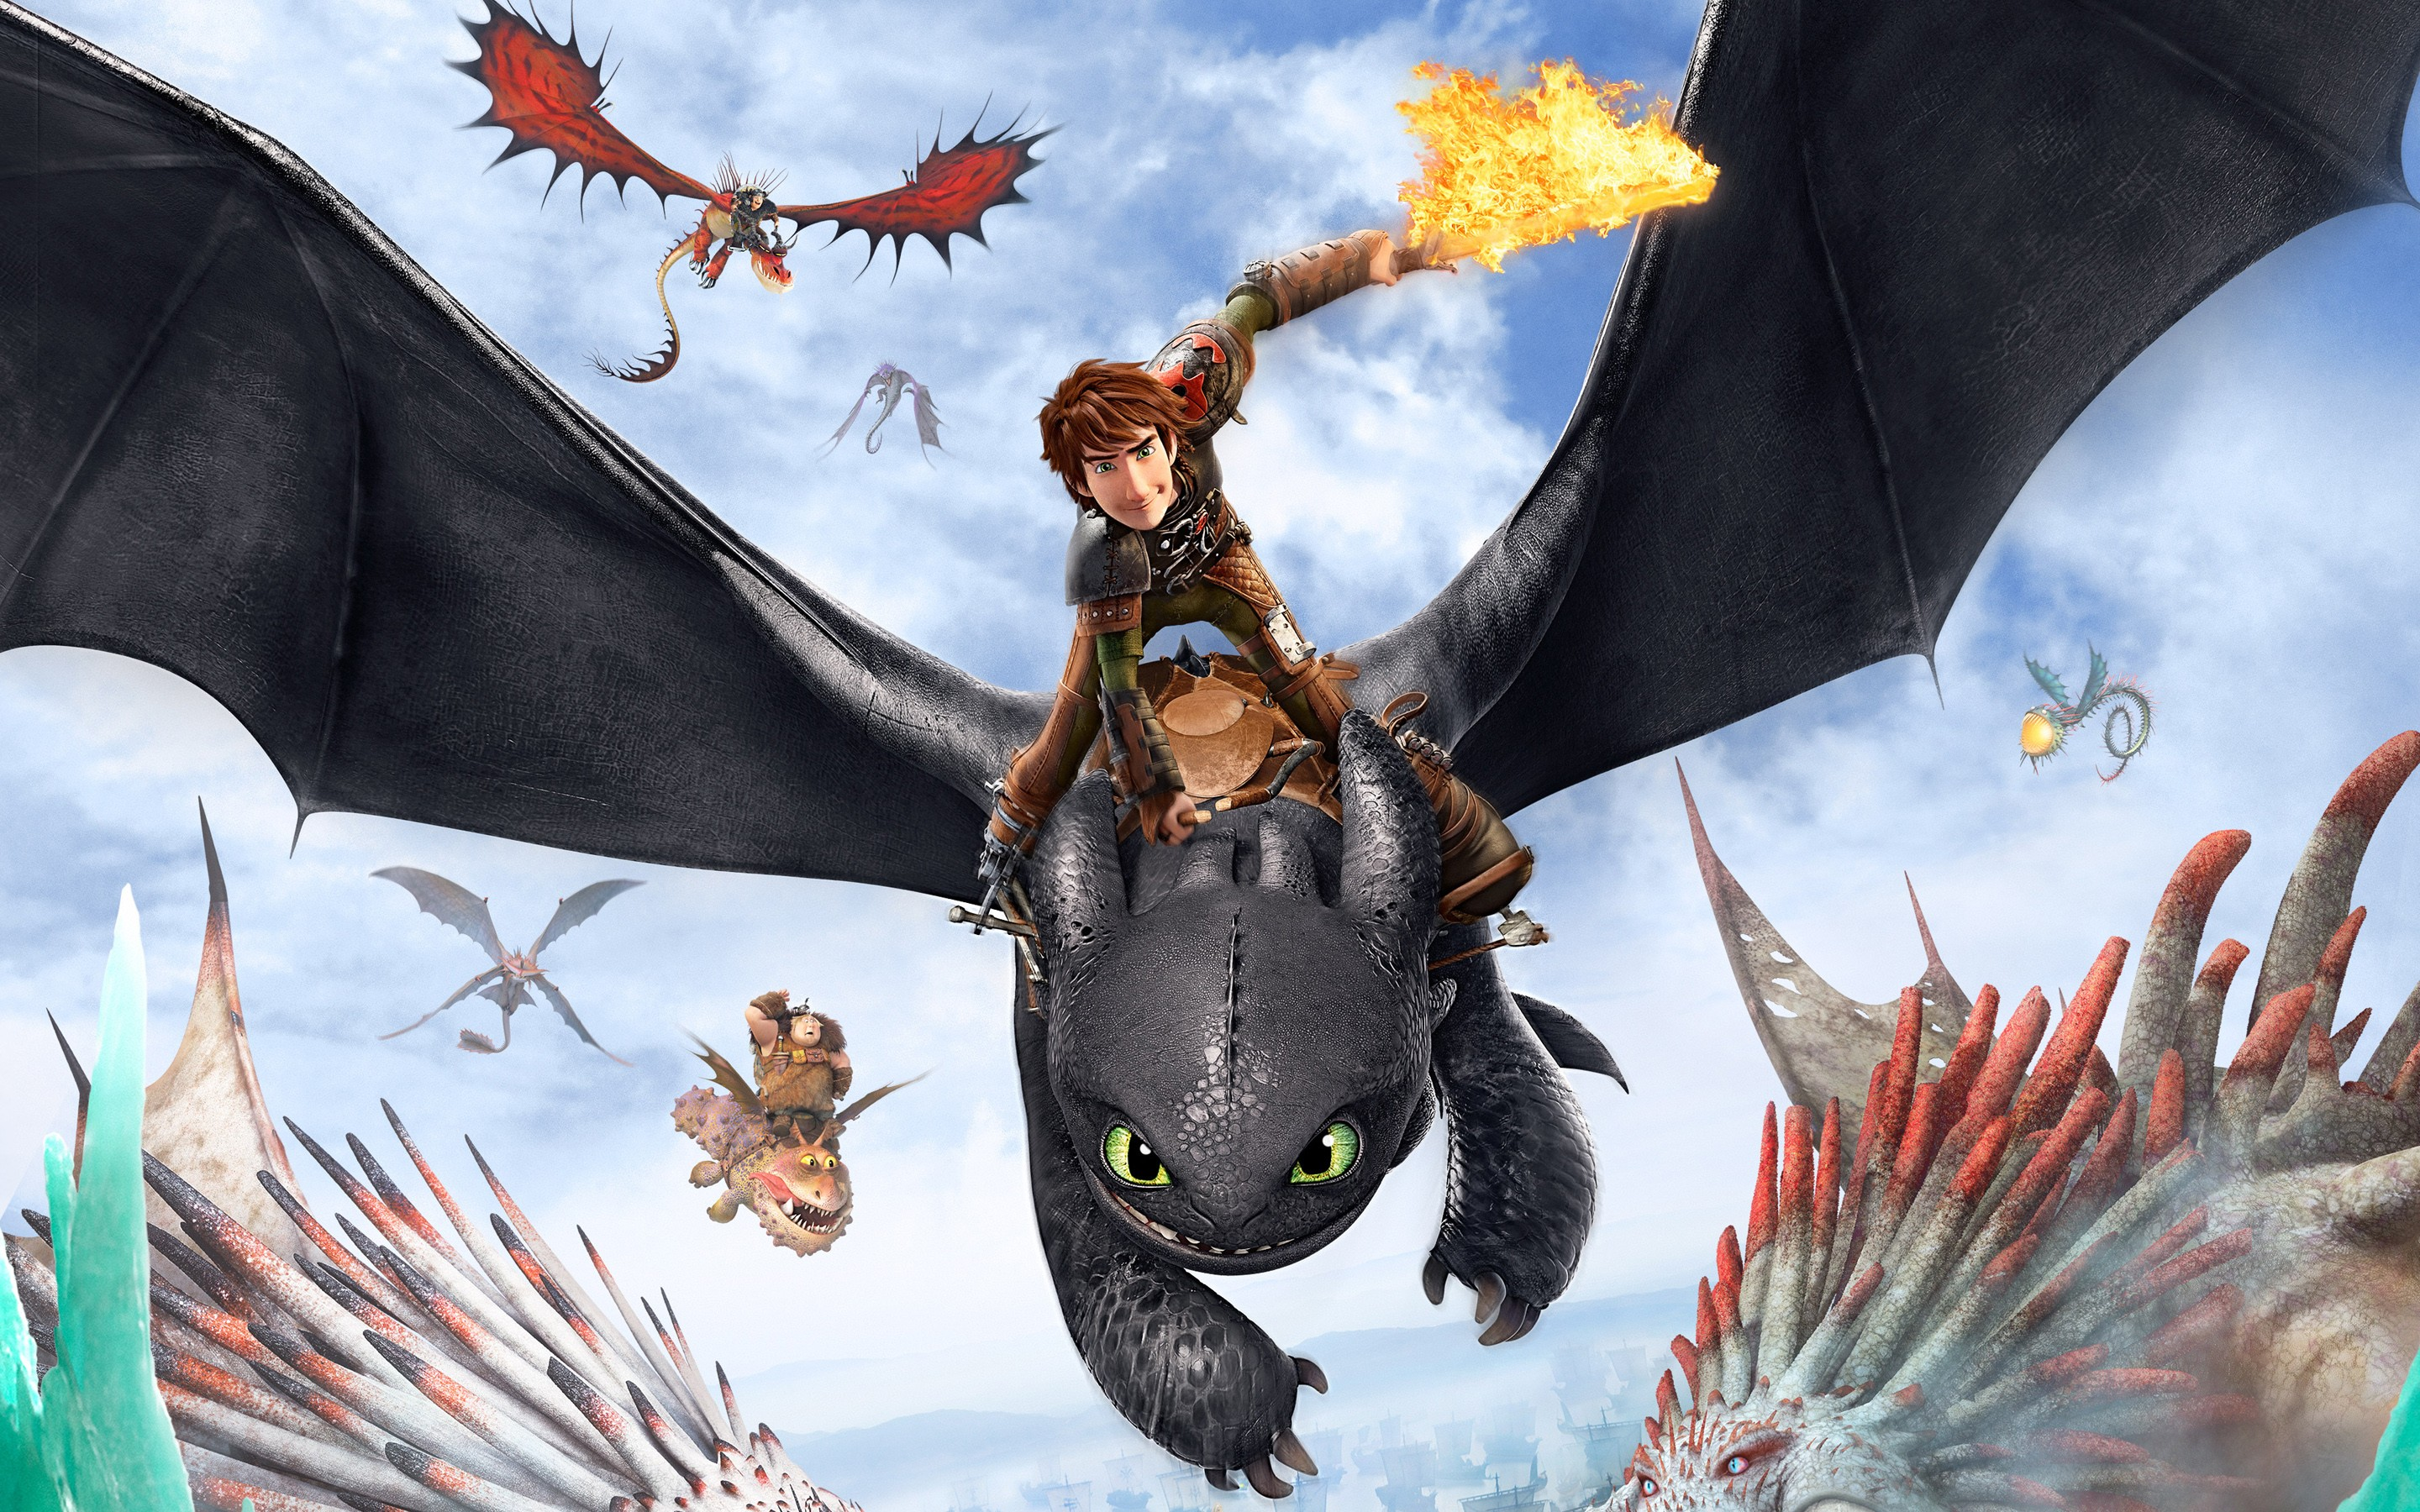 How To Train Your Dragon 2 Hd Movies 4k Wallpapers Images